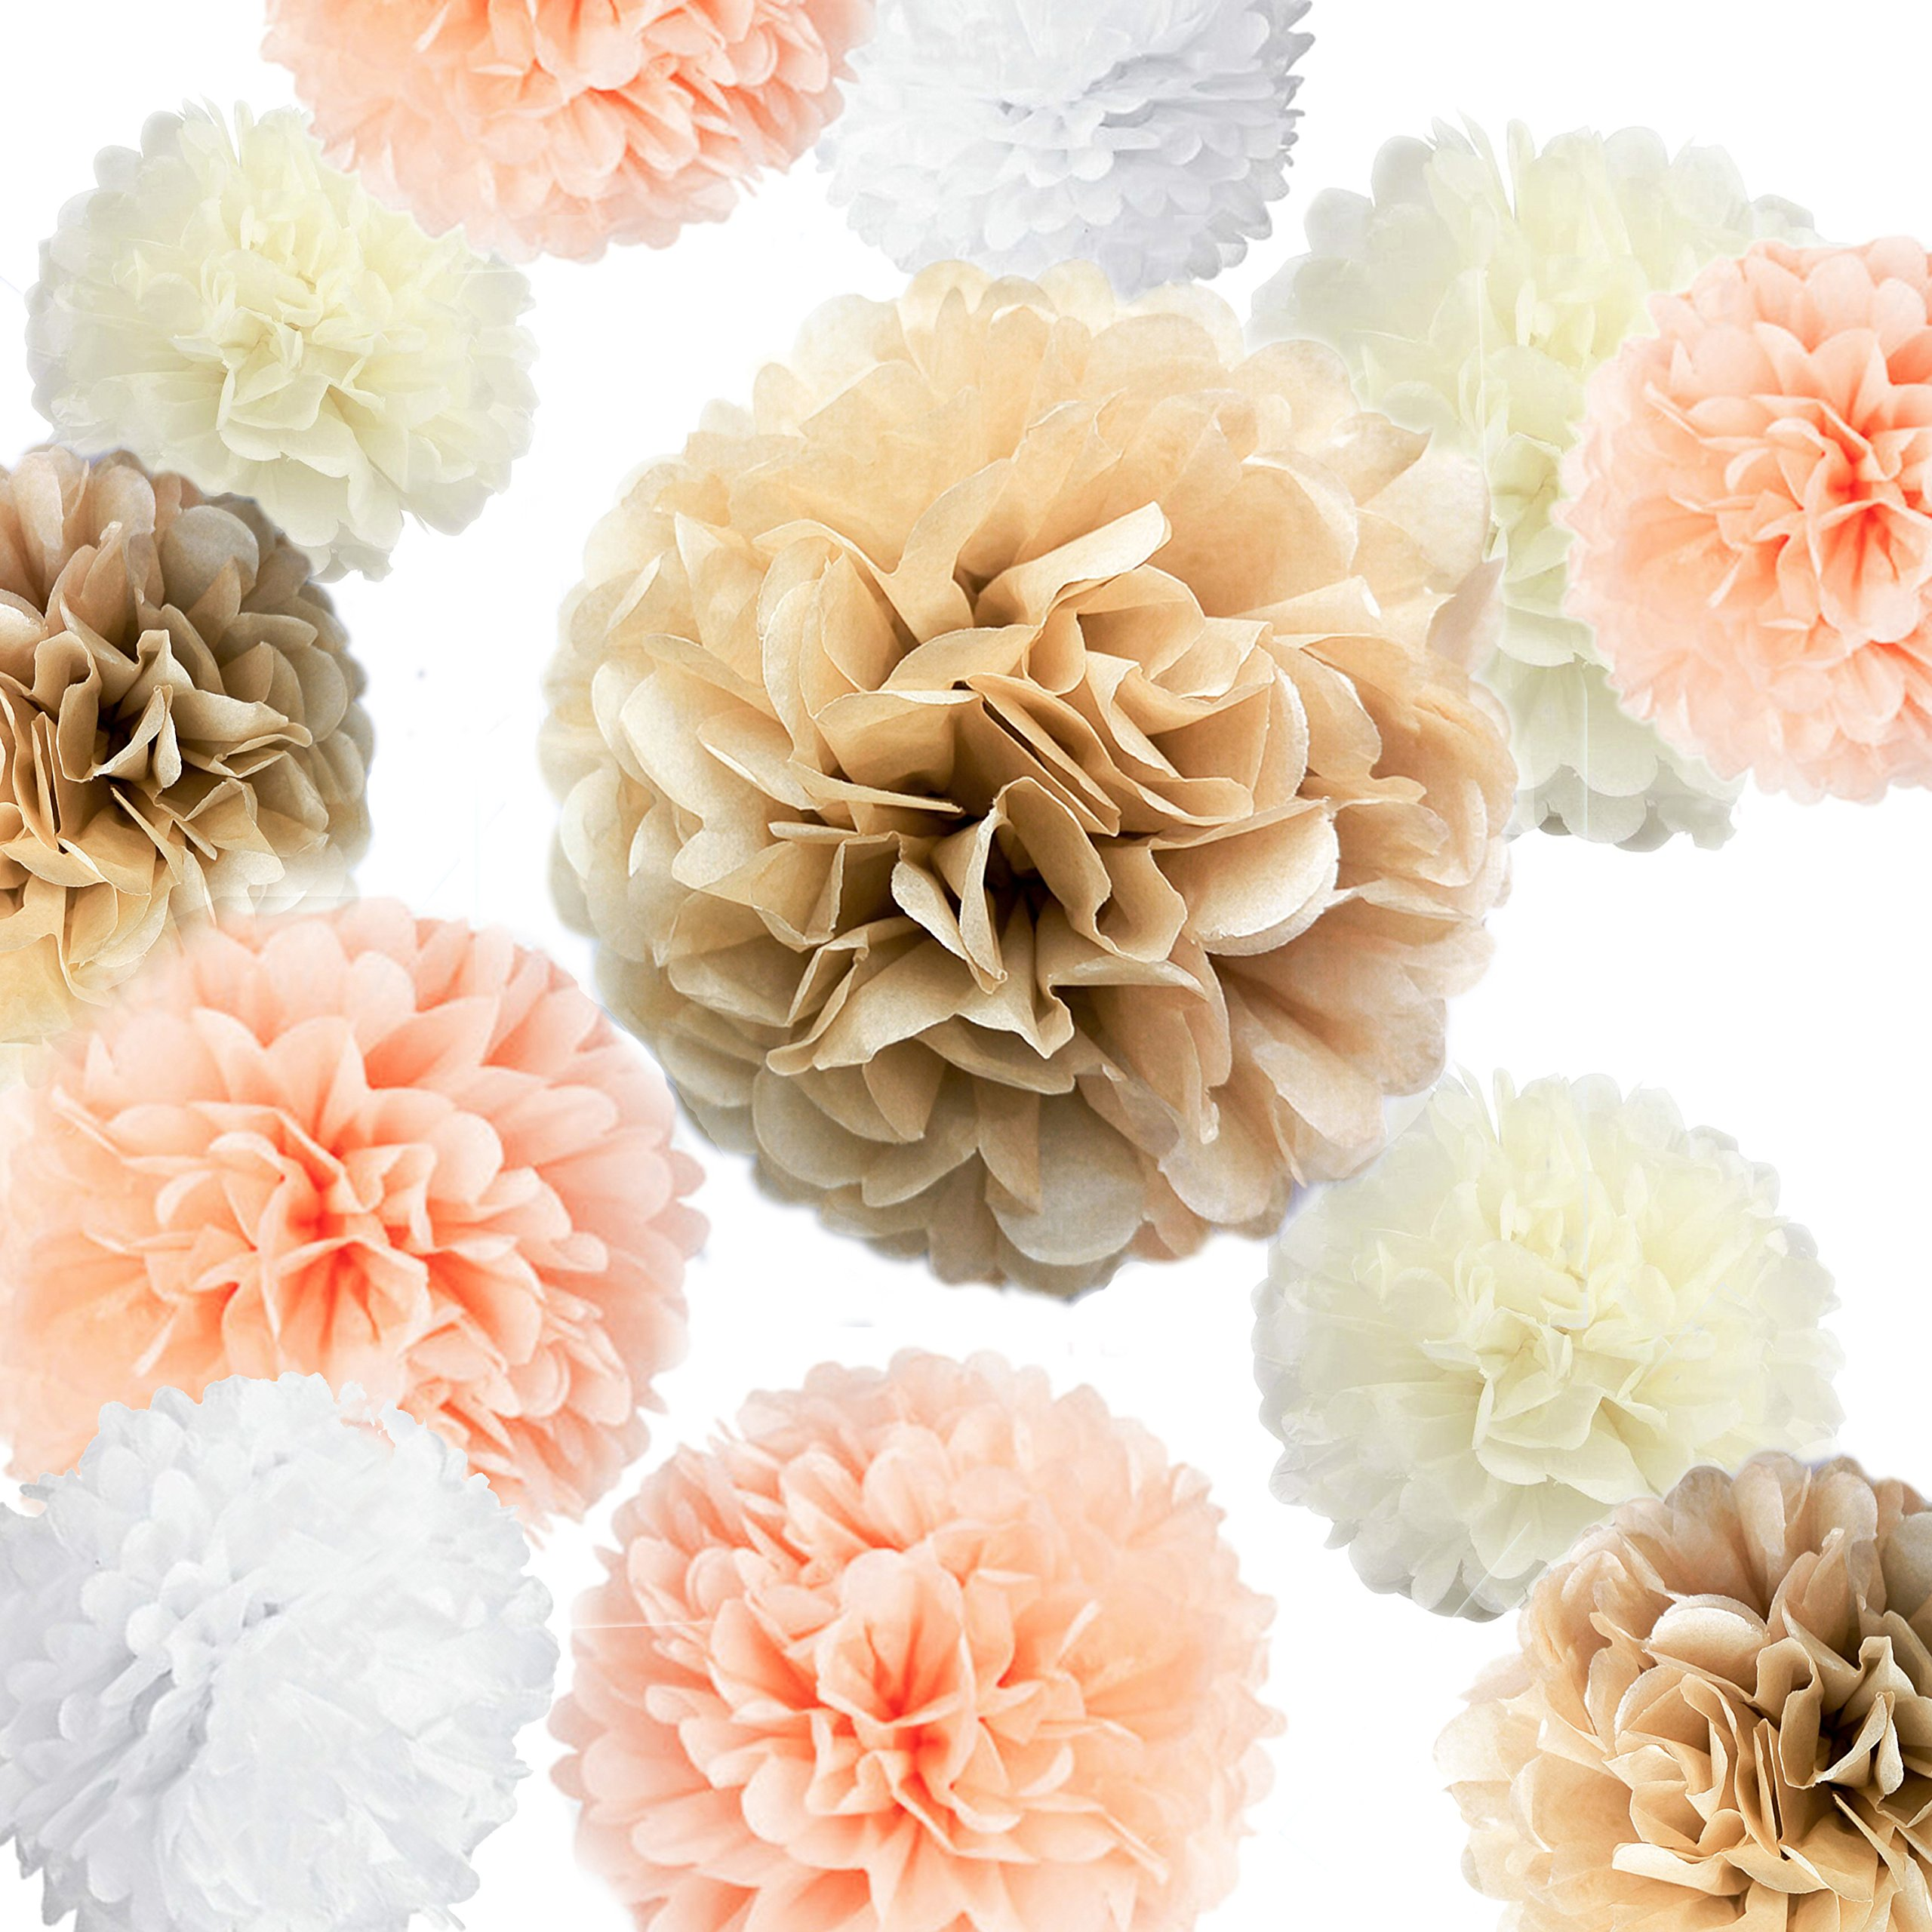 VIDAL CRAFTS 20 Pcs Party Tissue Paper Pom Poms Set (14'', 10'', 8'', 6'' Paper Flowers) for Wedding, Birthday, Baby Shower, Bachelorette, Nursery Decor - Champagne, Peach, Ivory, White by Vidal Crafts